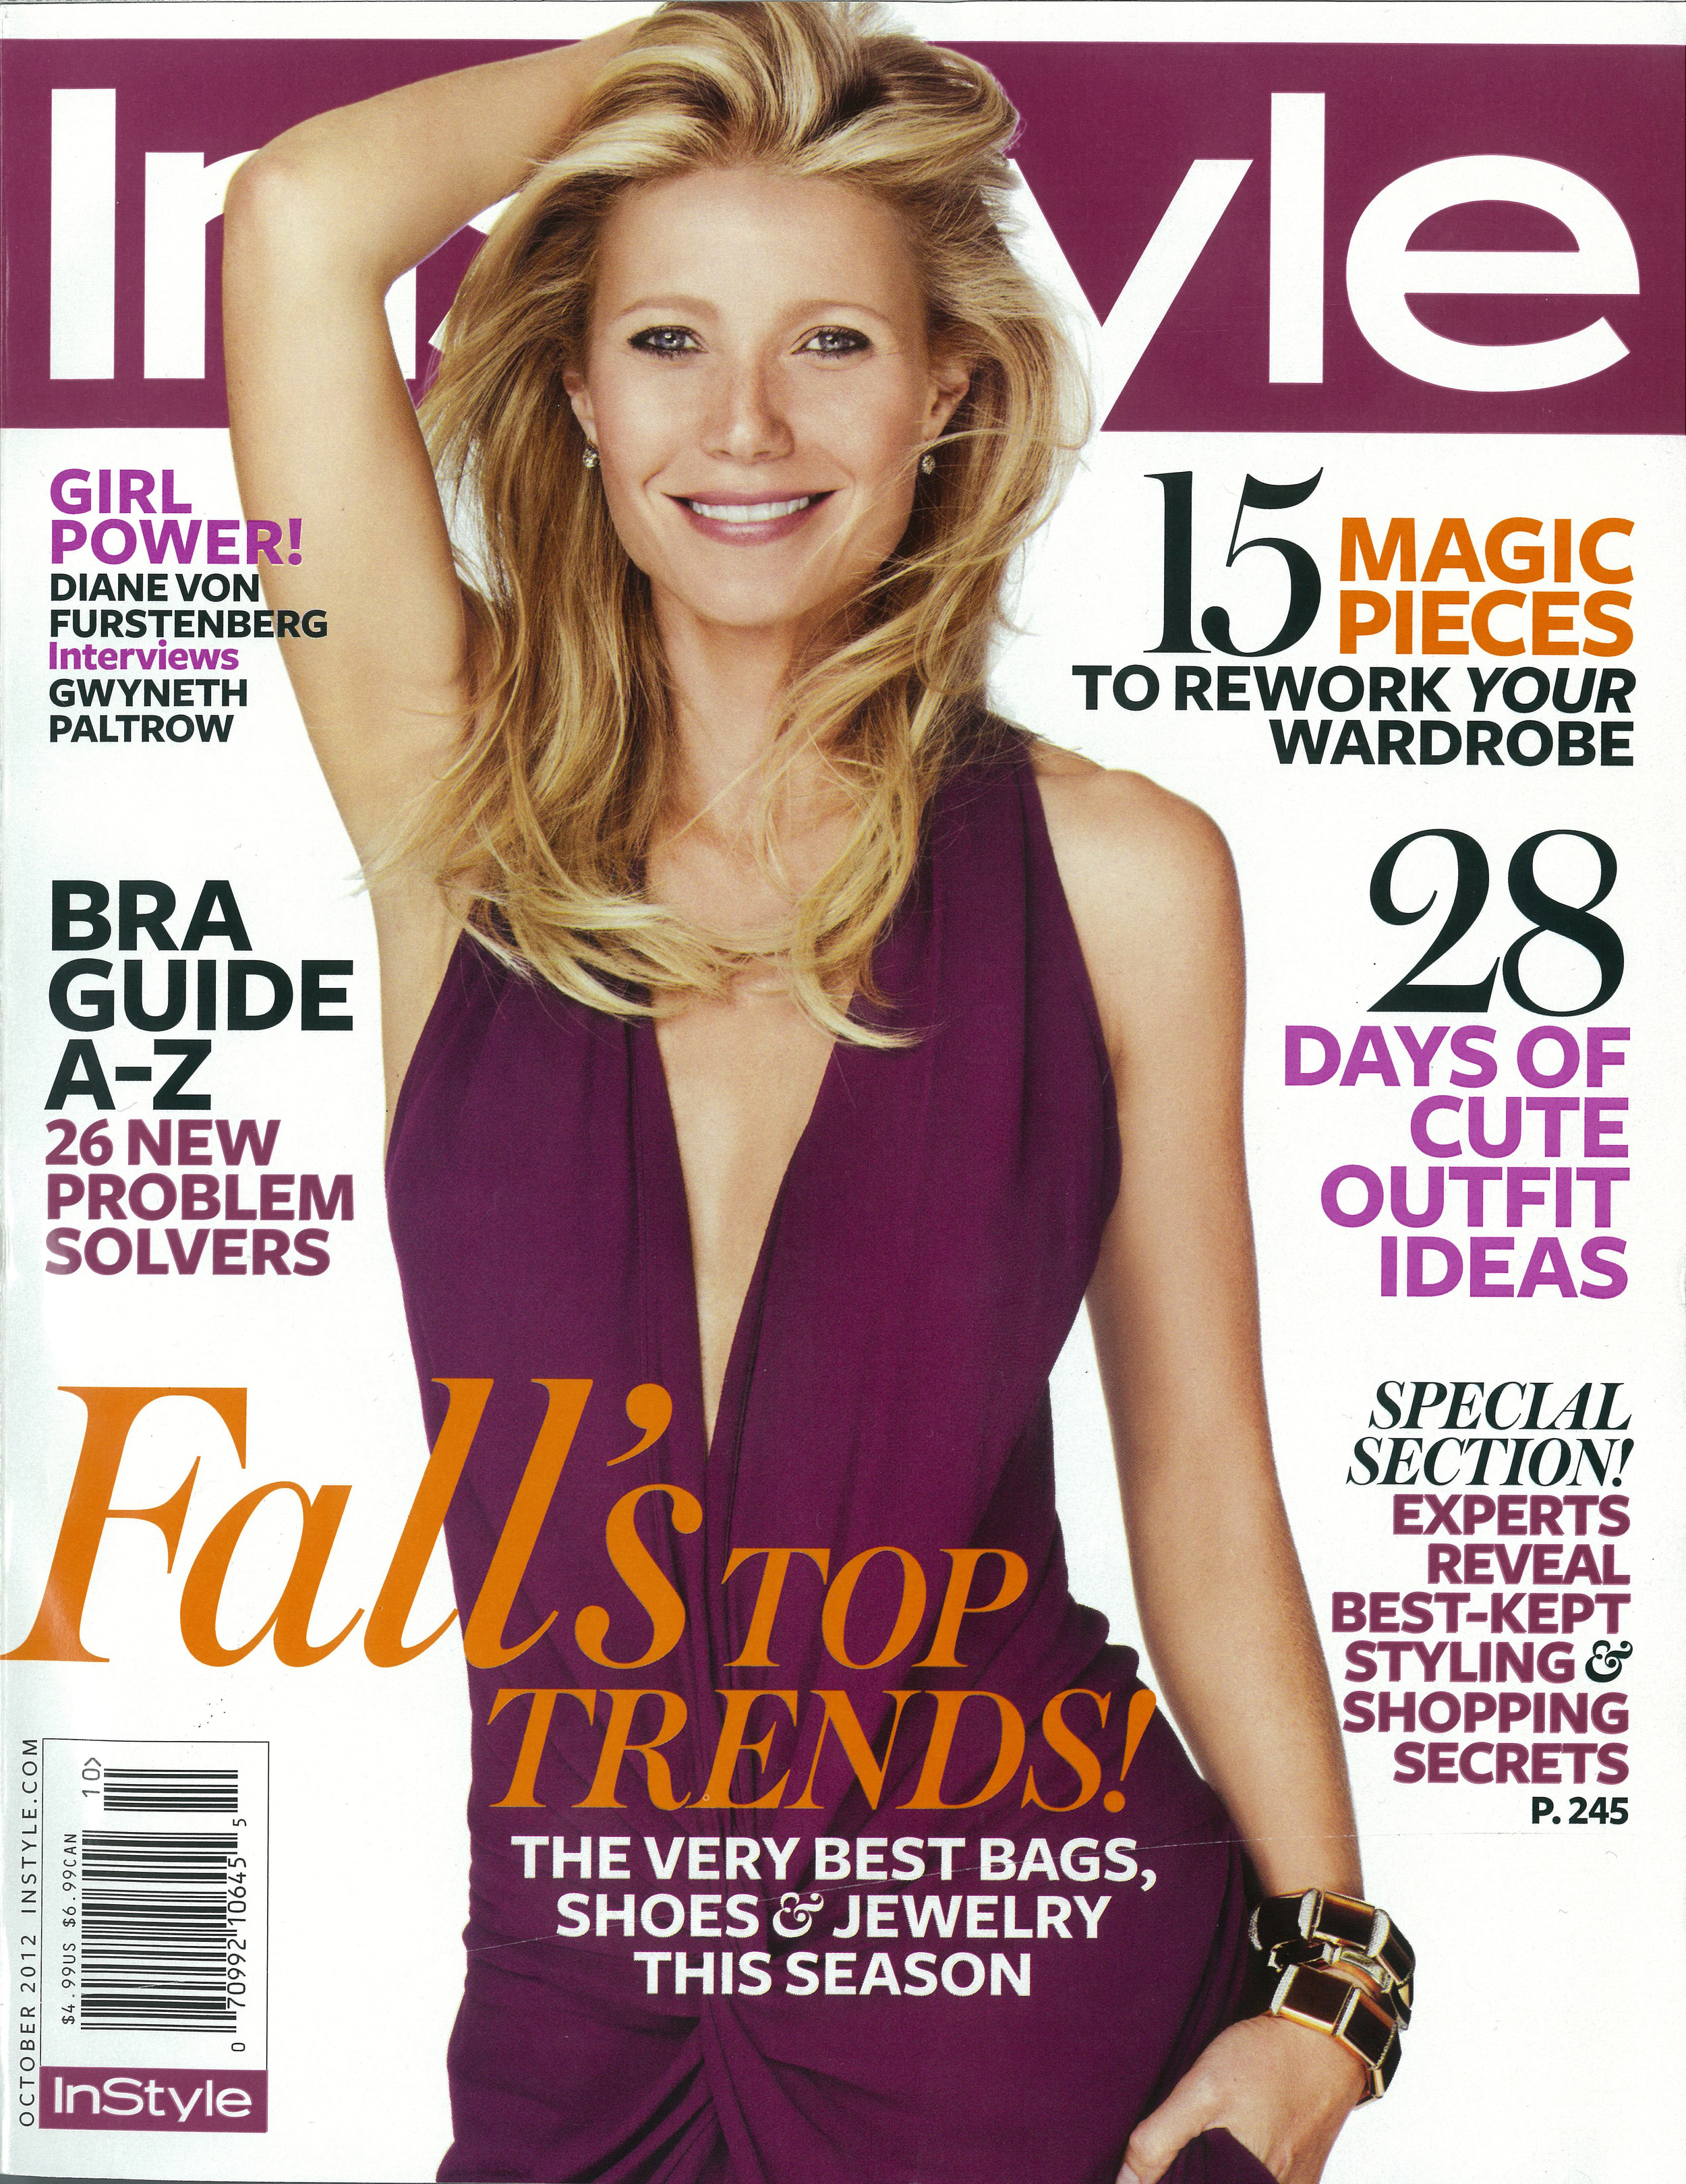 Instyle 10.2012 cover.jpg